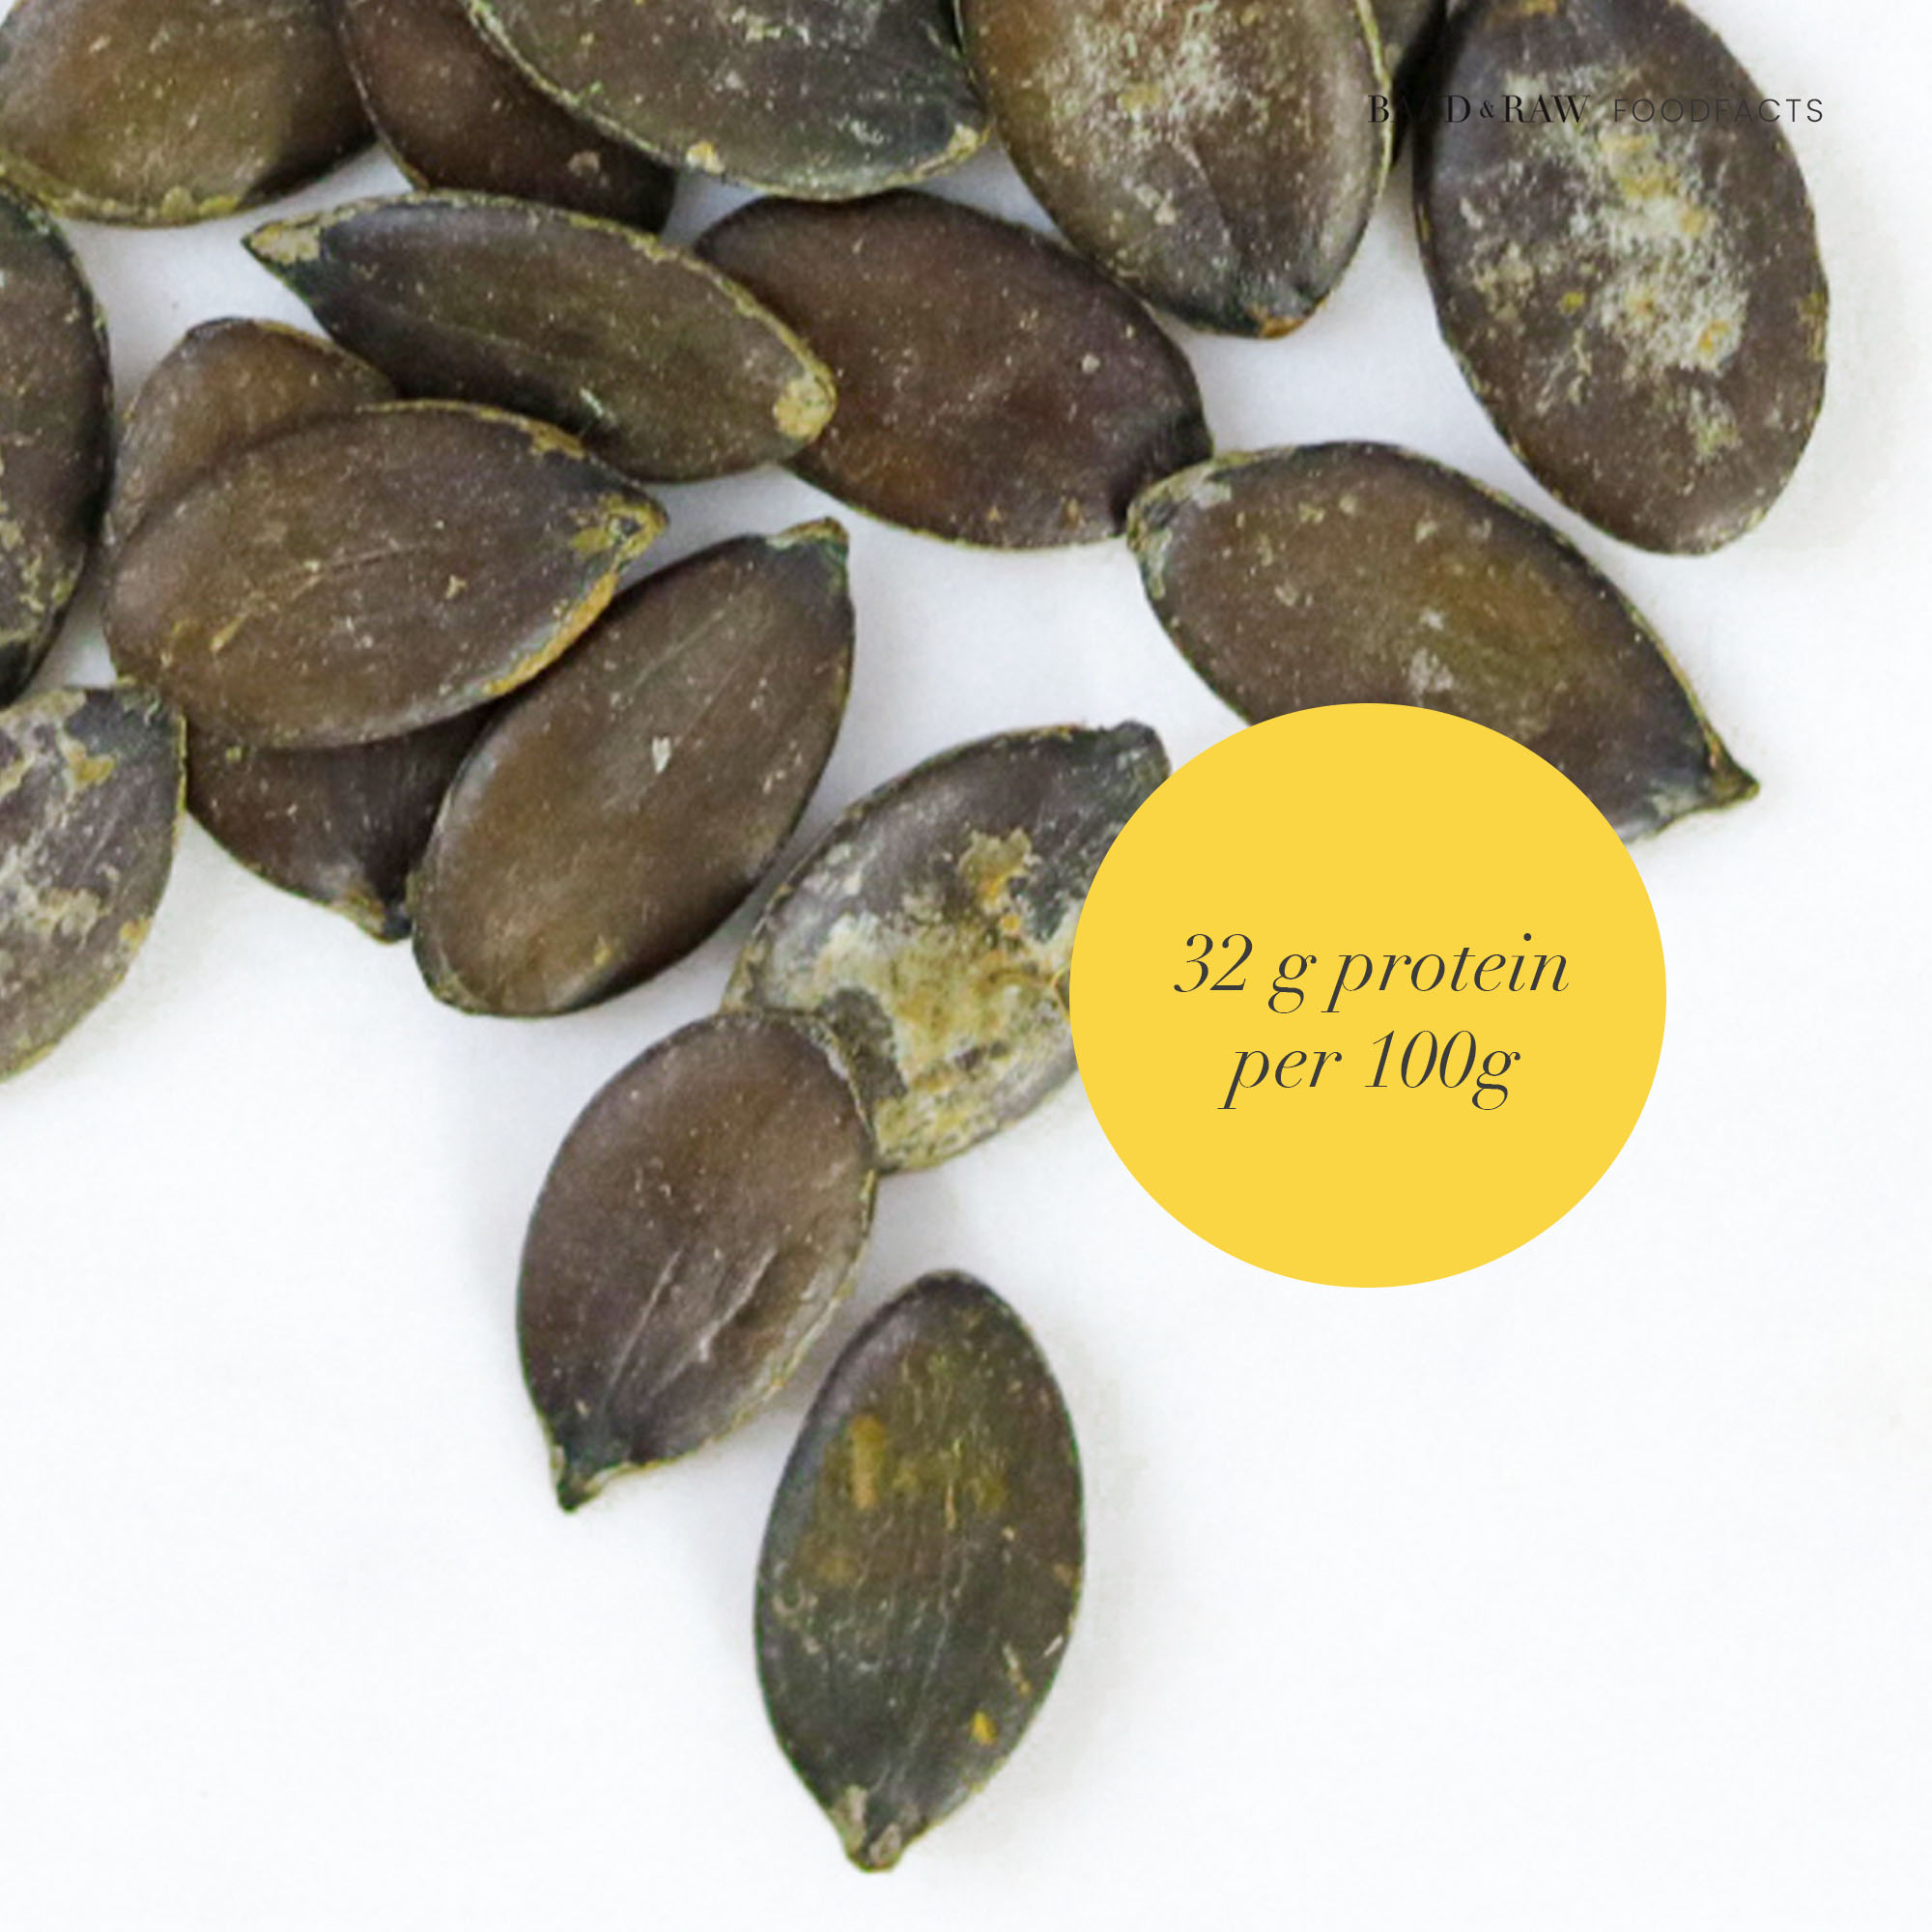 Pumpkin Seeds; Protein Guide by Bakd&Raw